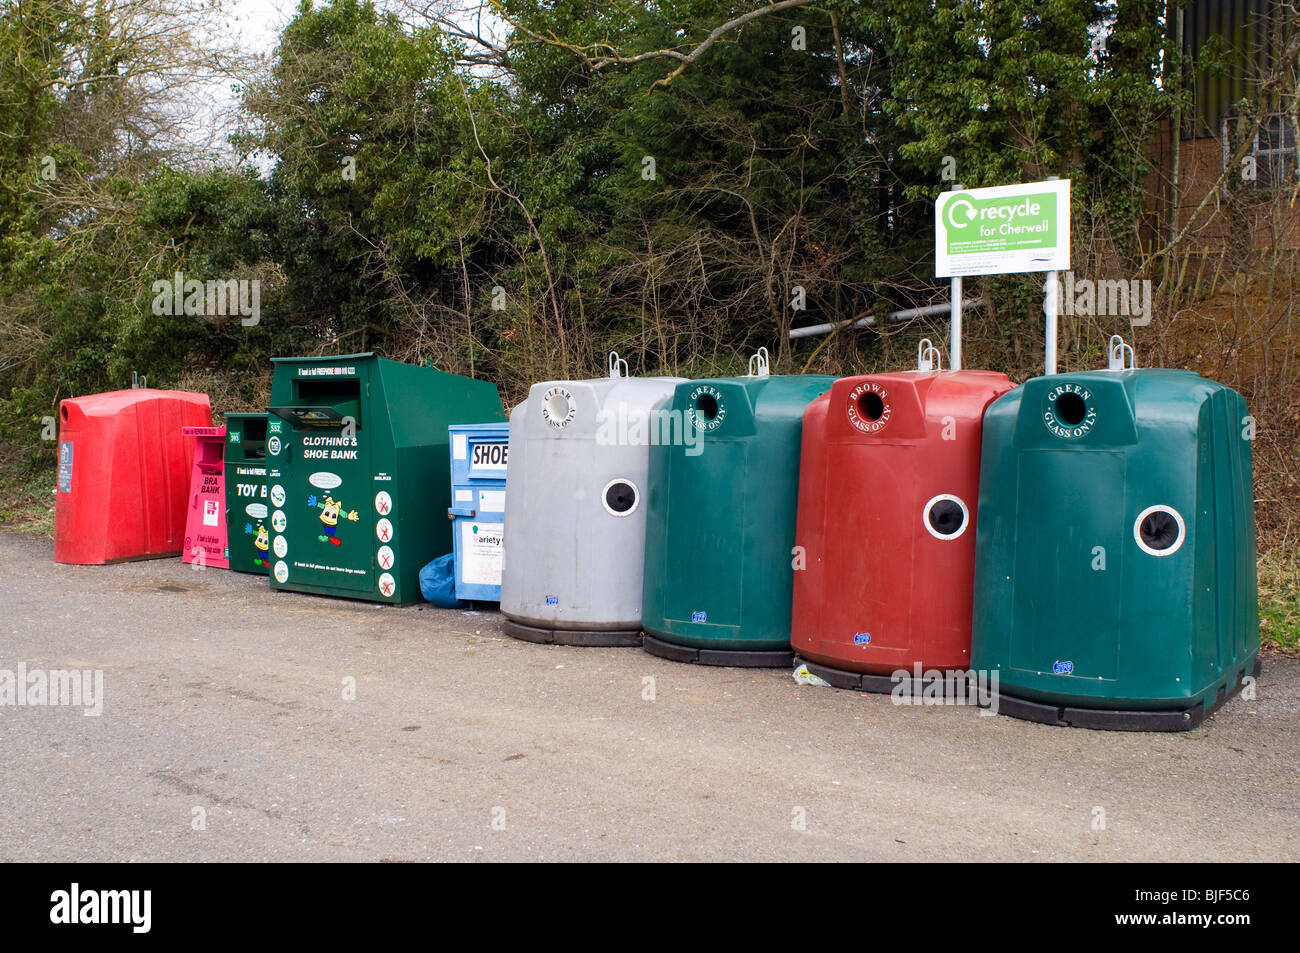 recycling centre near Banbury Oxfordshire with various recycling containers - Stock Image